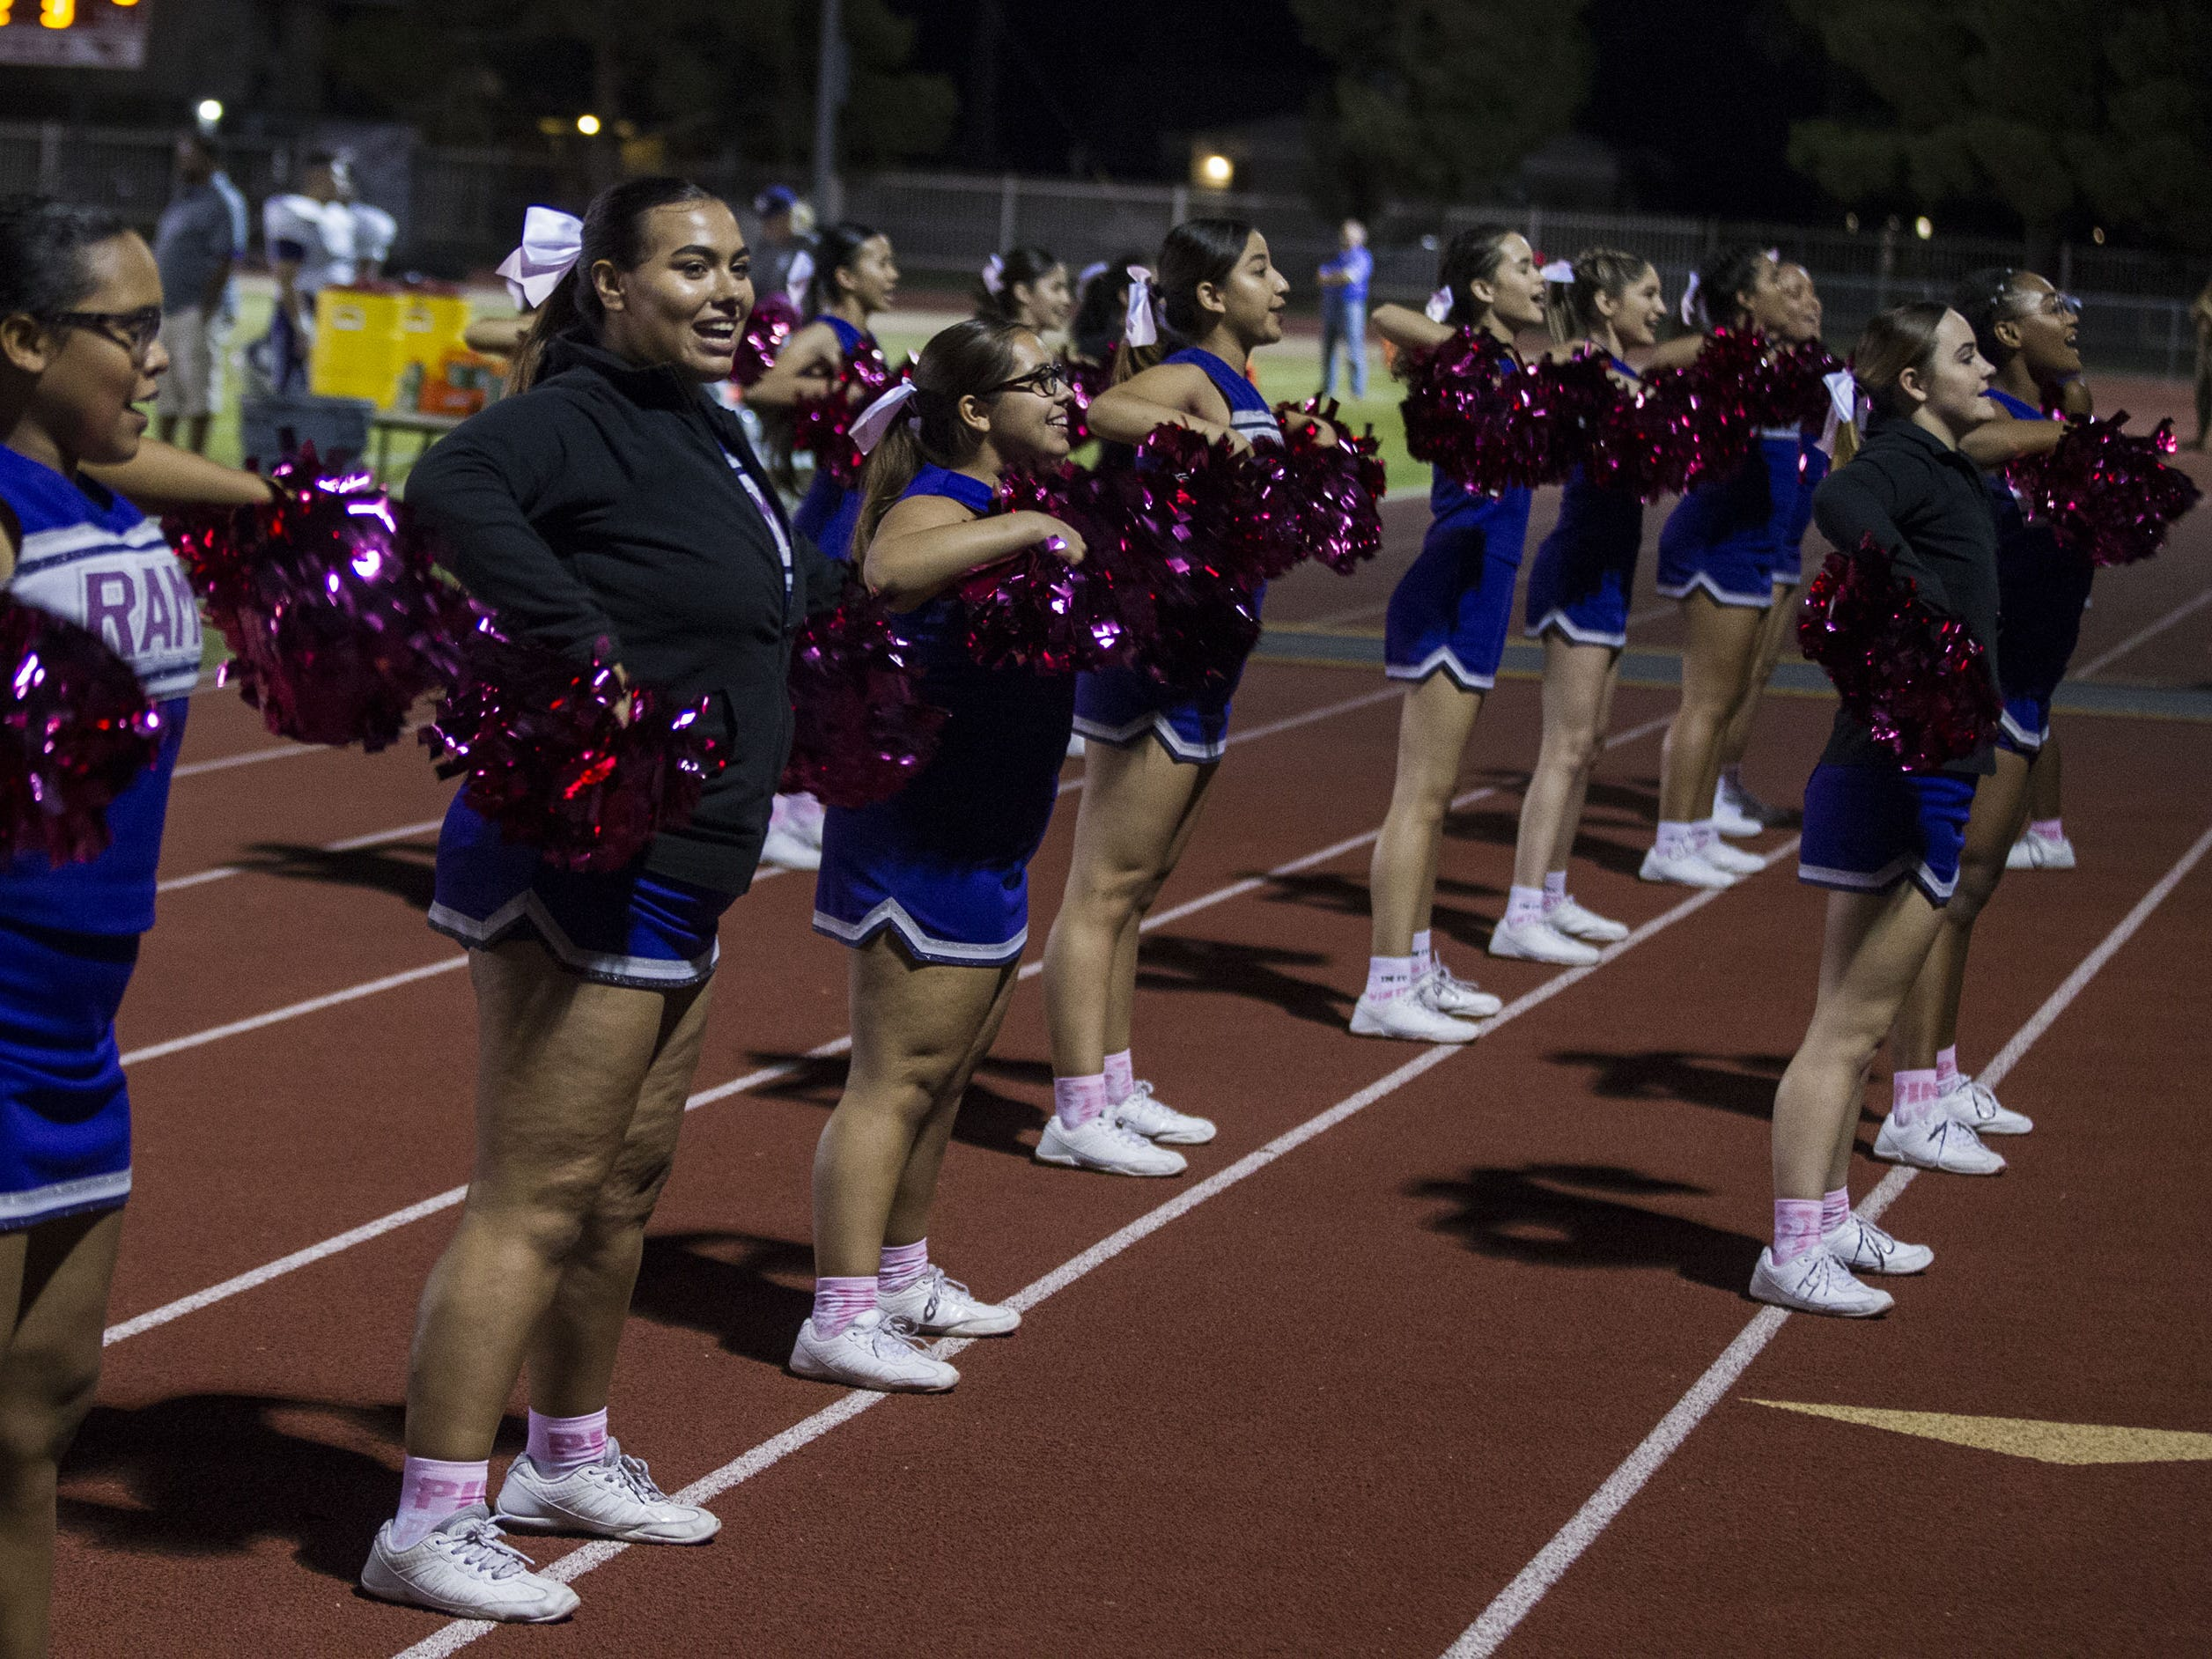 Washington's cheerleaders do their thing during their game in Glendale Friday, Oct. 5, 2018. #azhsfb